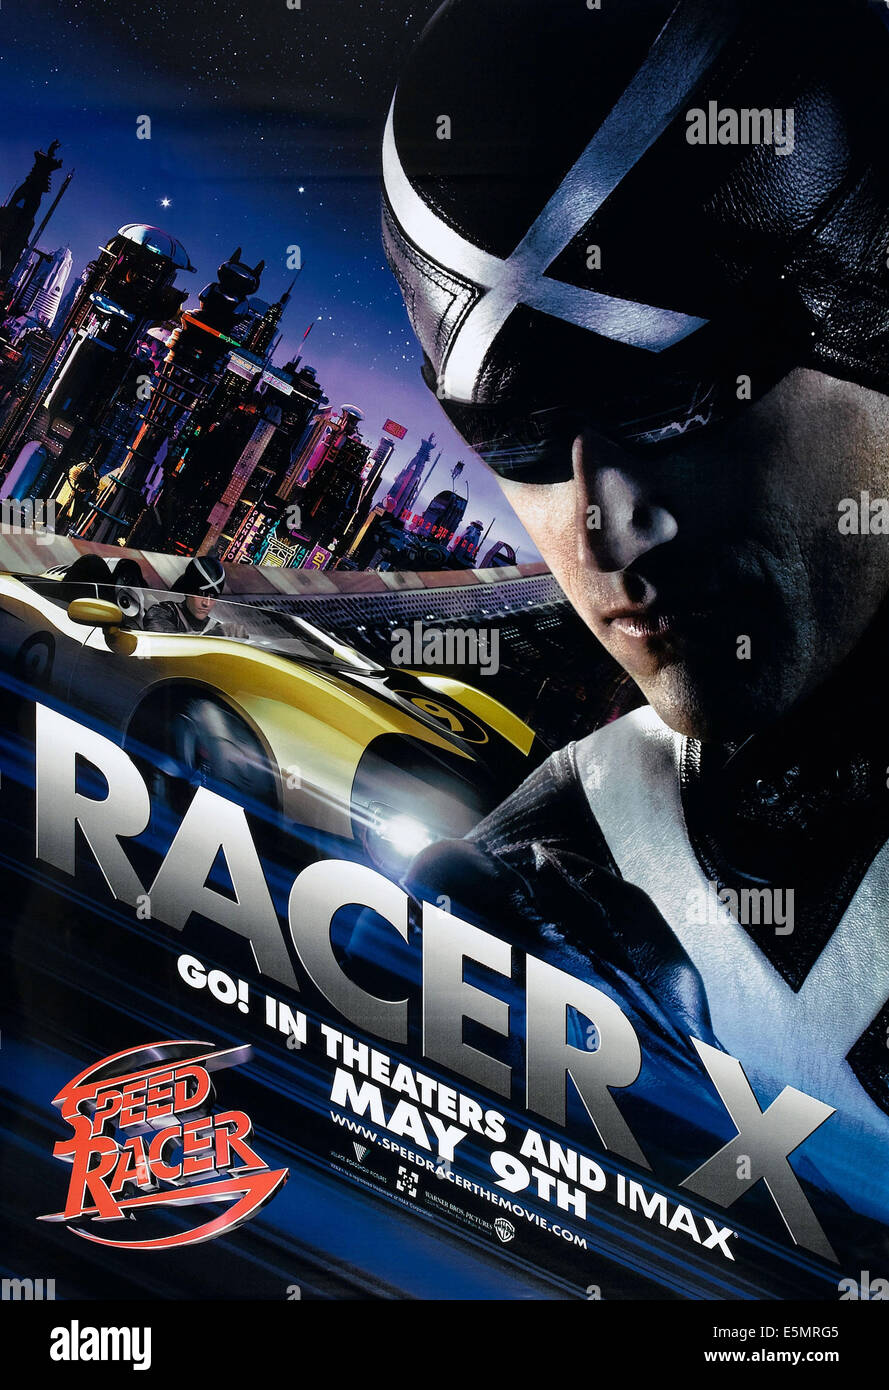 SPEED RACER, US advance poster, Matthew Fox, 2008. ©Warner Brothers/courtesy Everett Collection - Stock Image